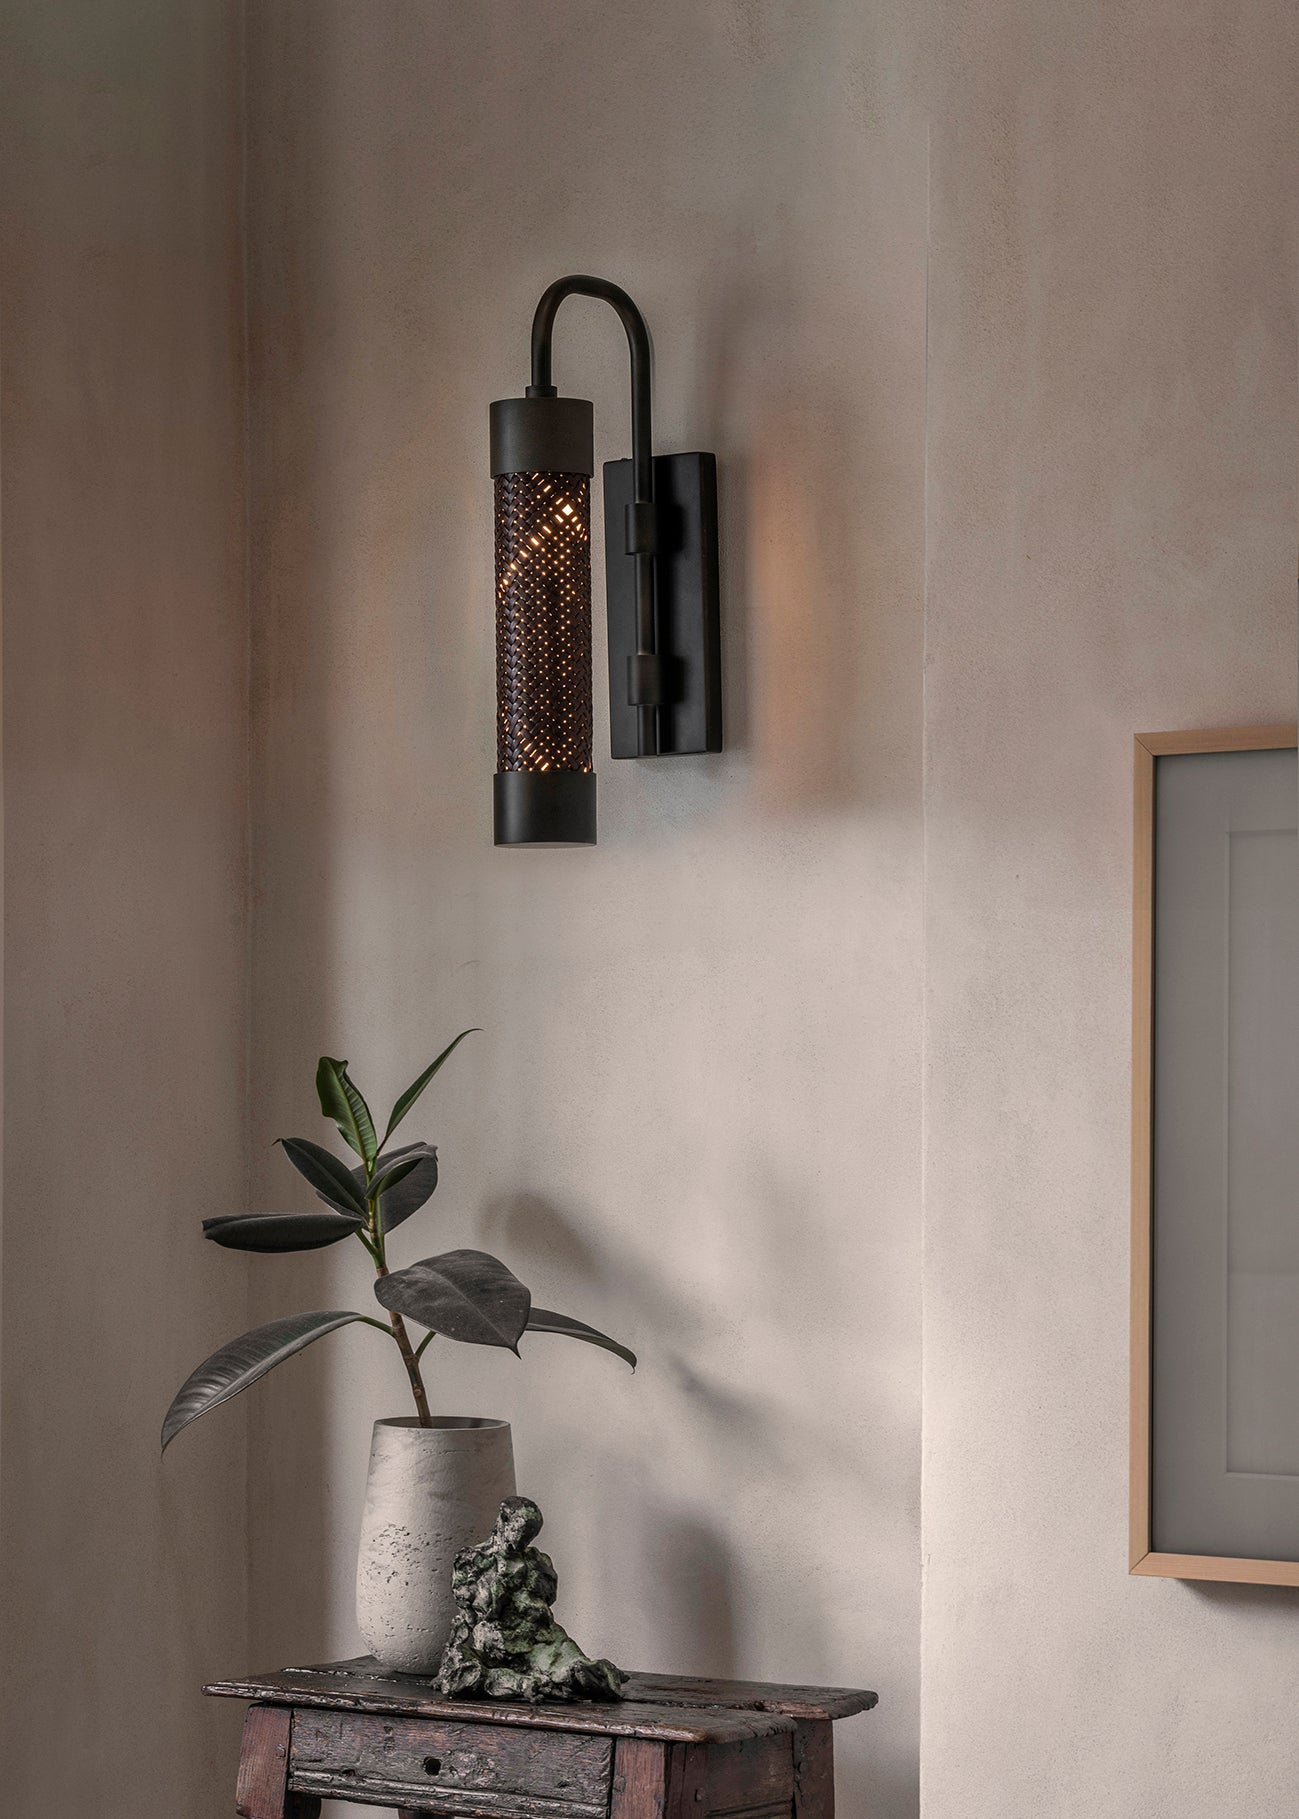 Bill Amberg launches a the Loom Collection of woven lighting designs